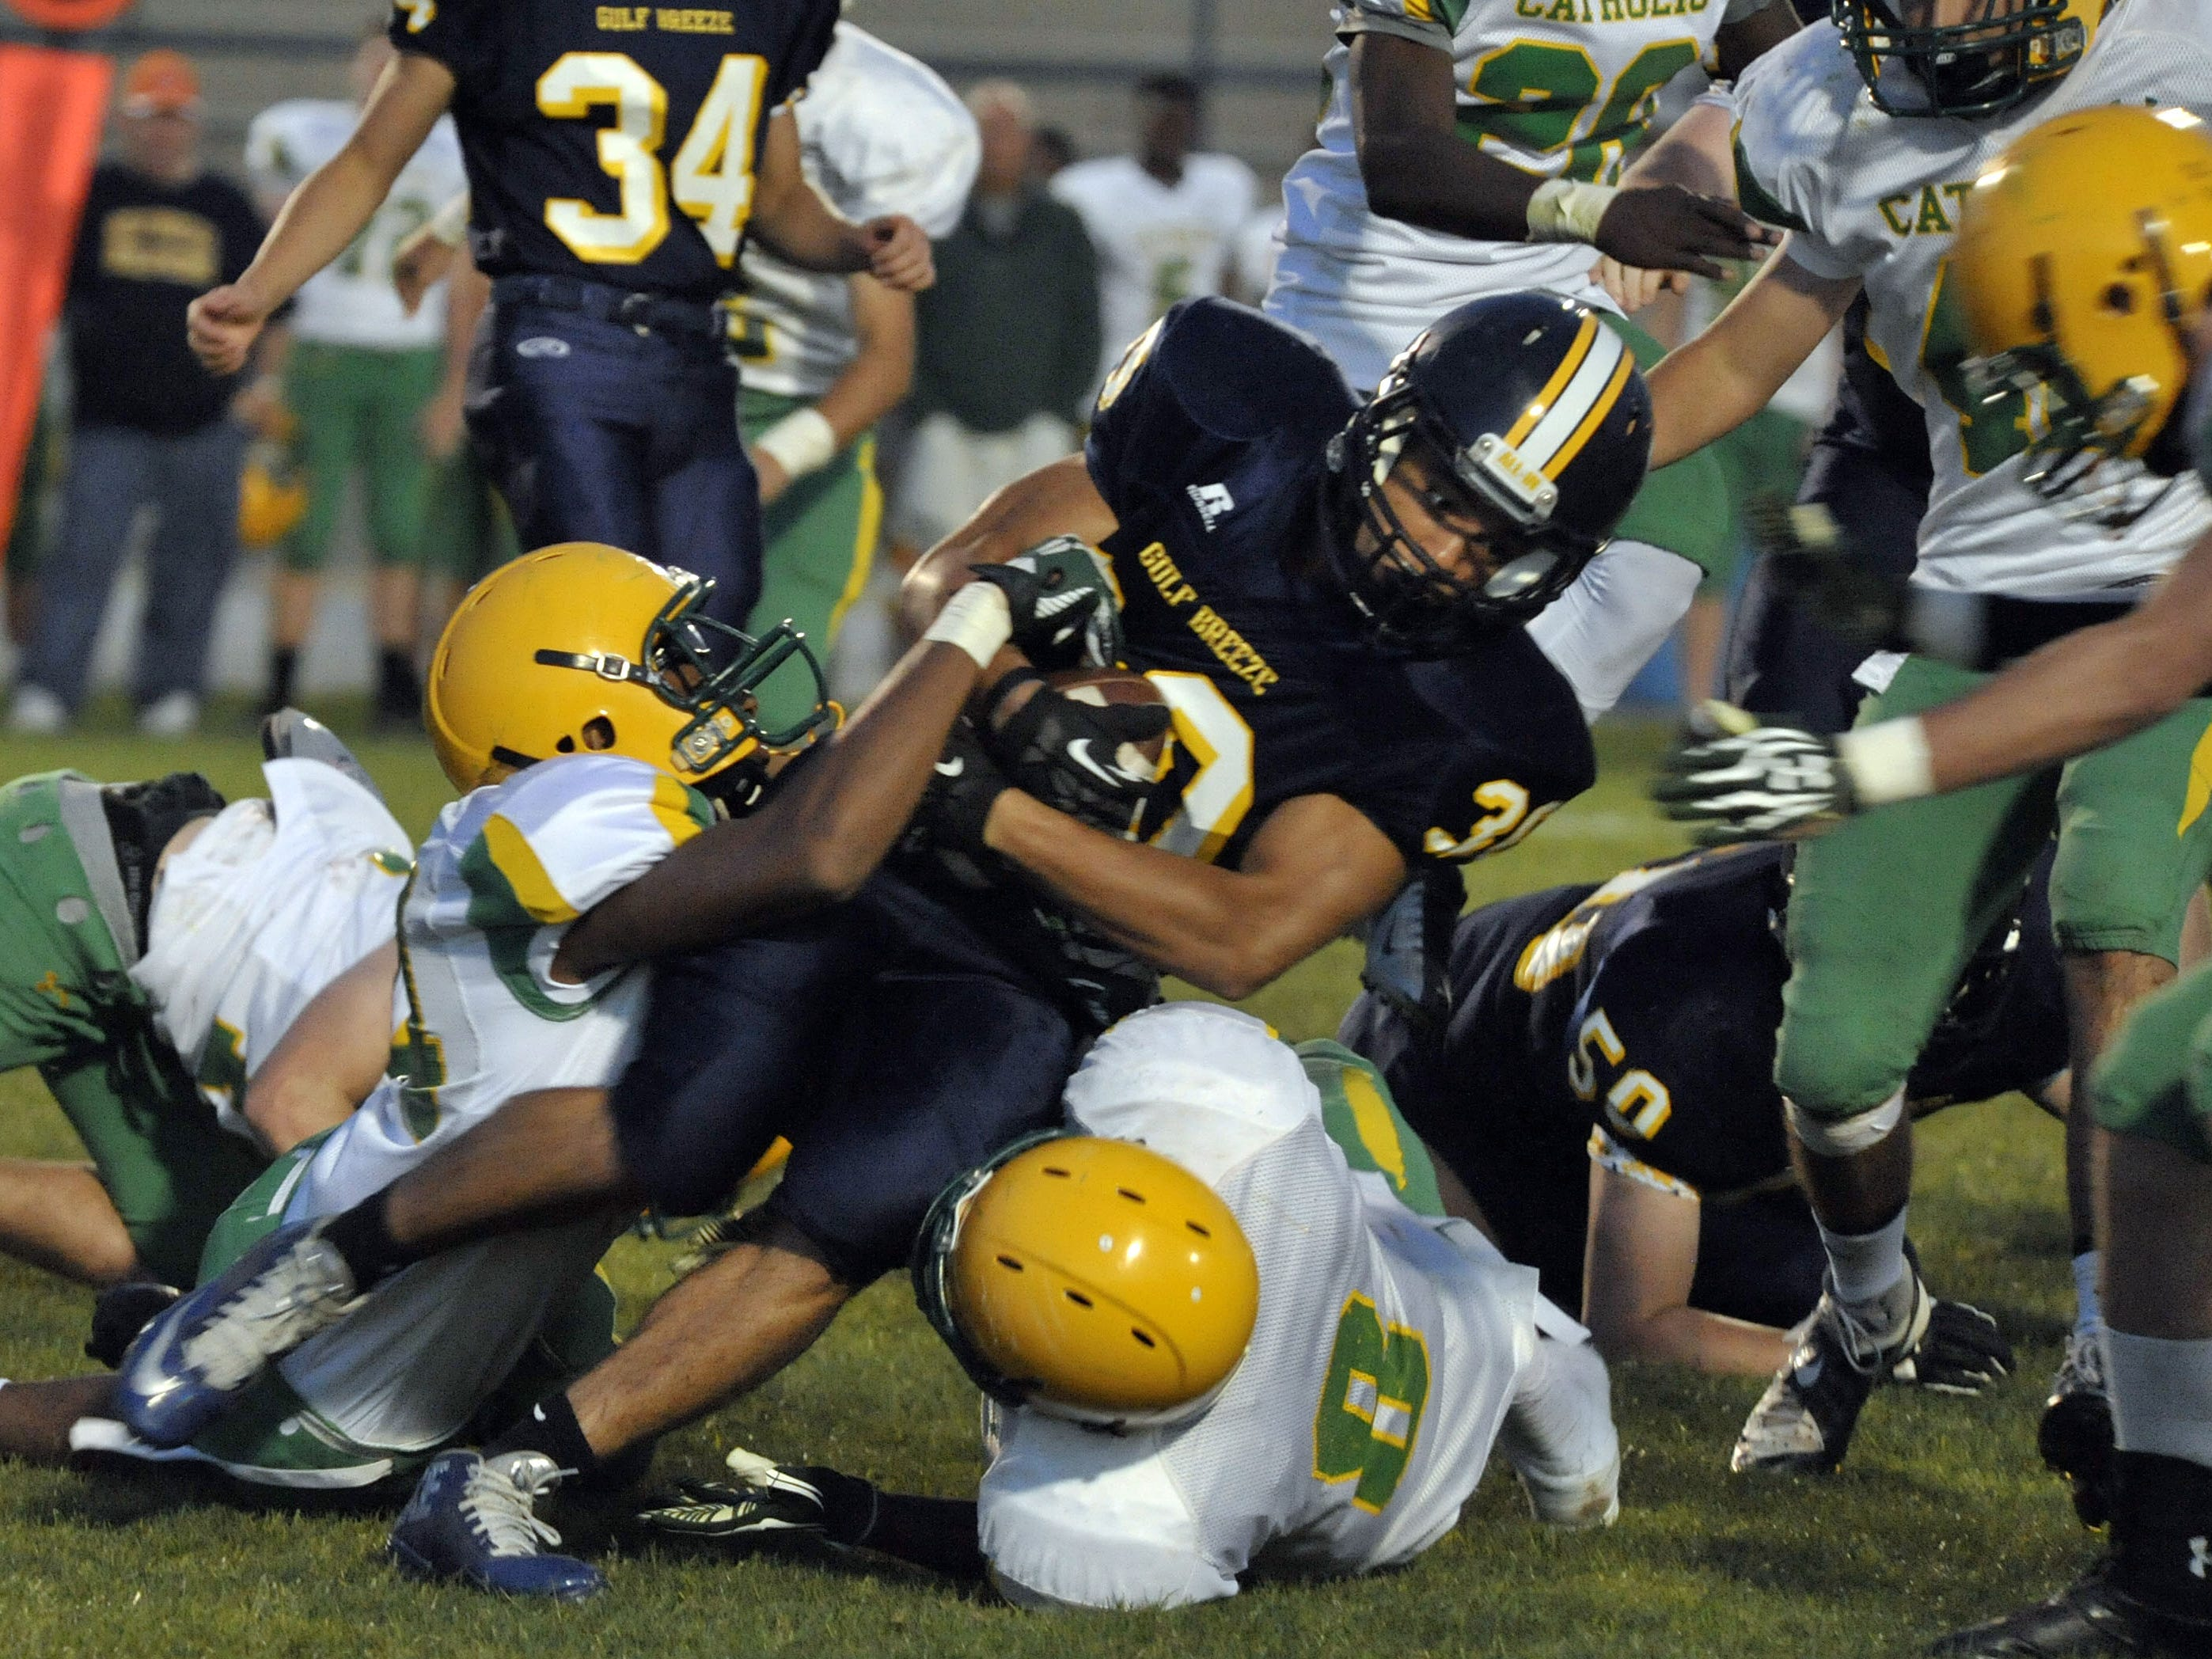 Catholic High drags down Chris Cain of Gulf Breeze during spring football action between the two teams earlier this year. Gulf Breeze will host Tate tonight in a kickoff classic.